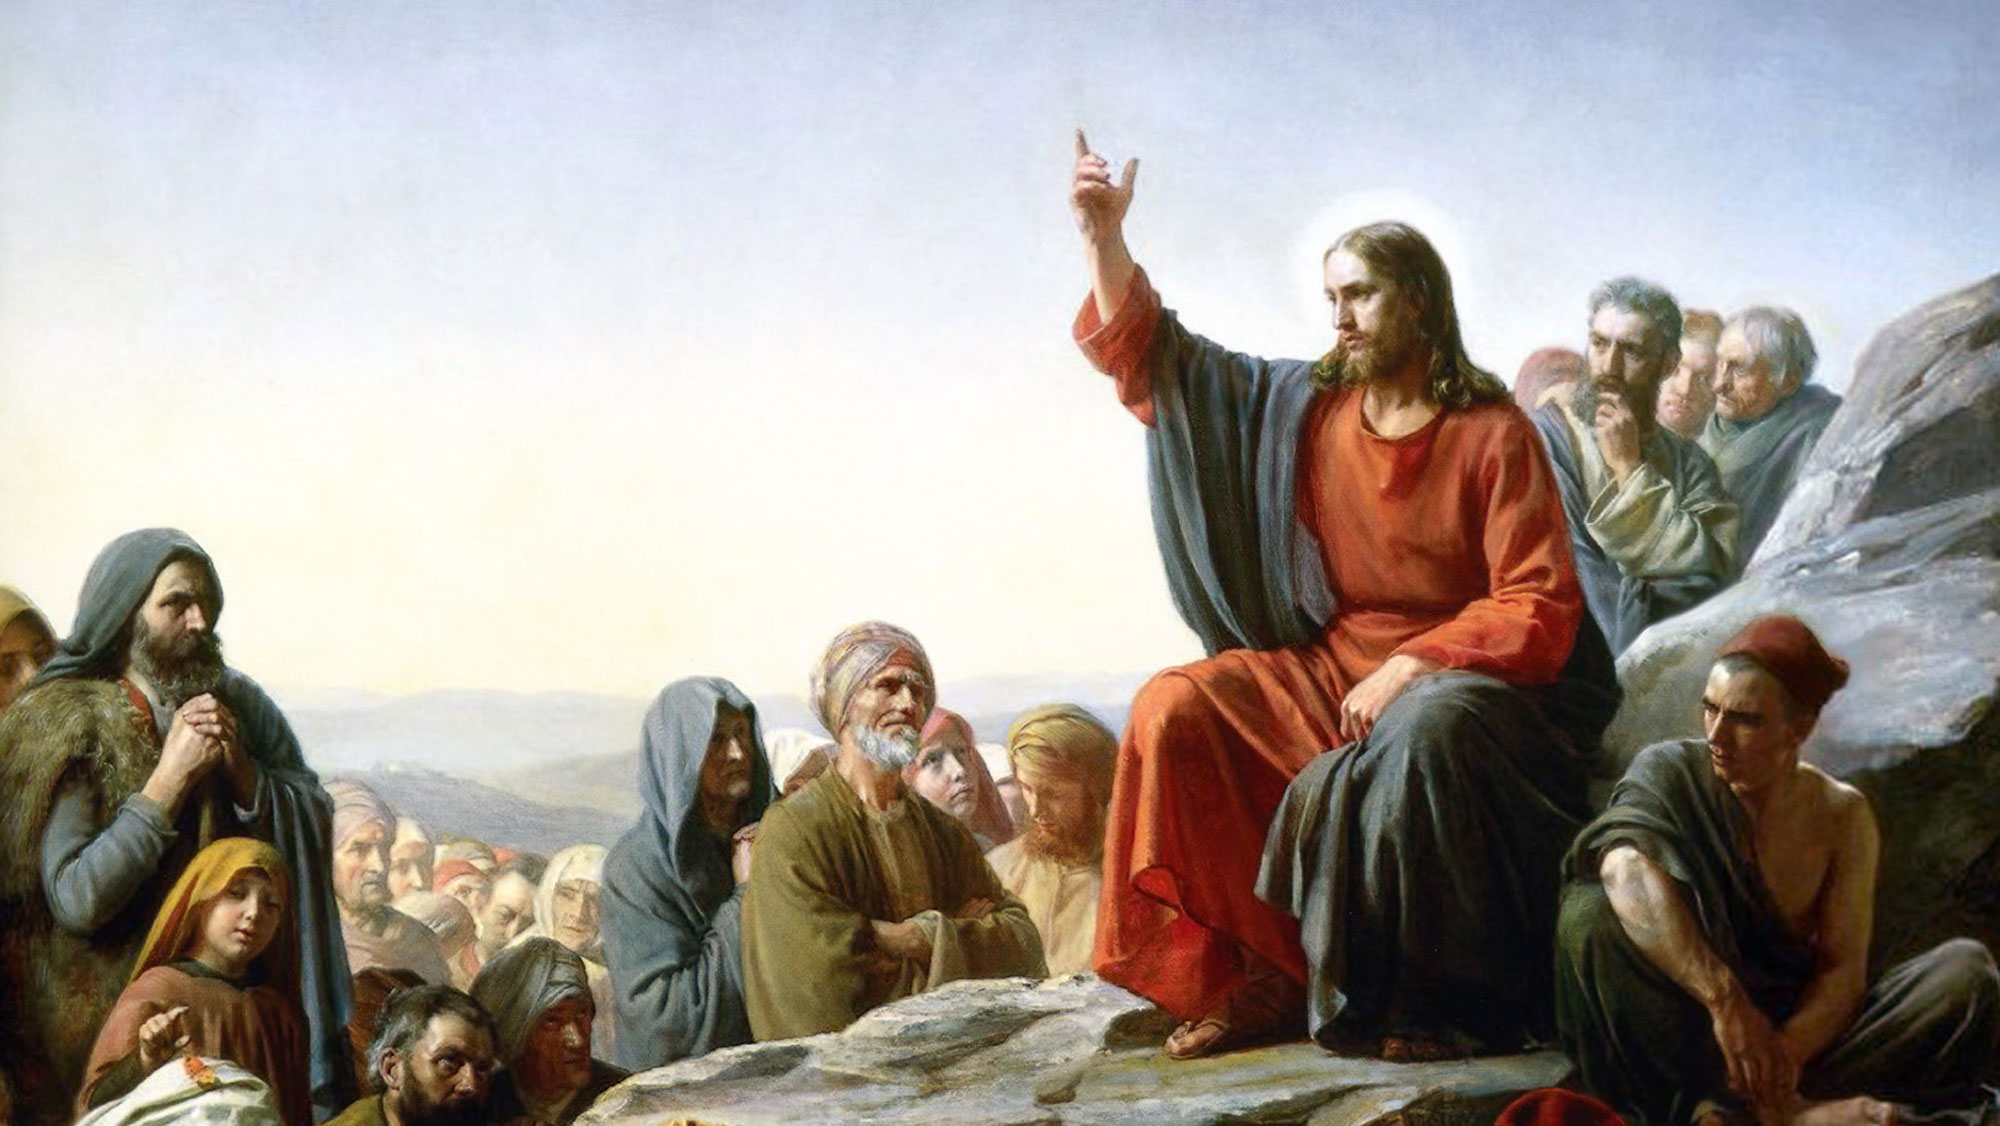 Sermon on the Mount by Carl Bloch. Image via Wikimedia Commons.